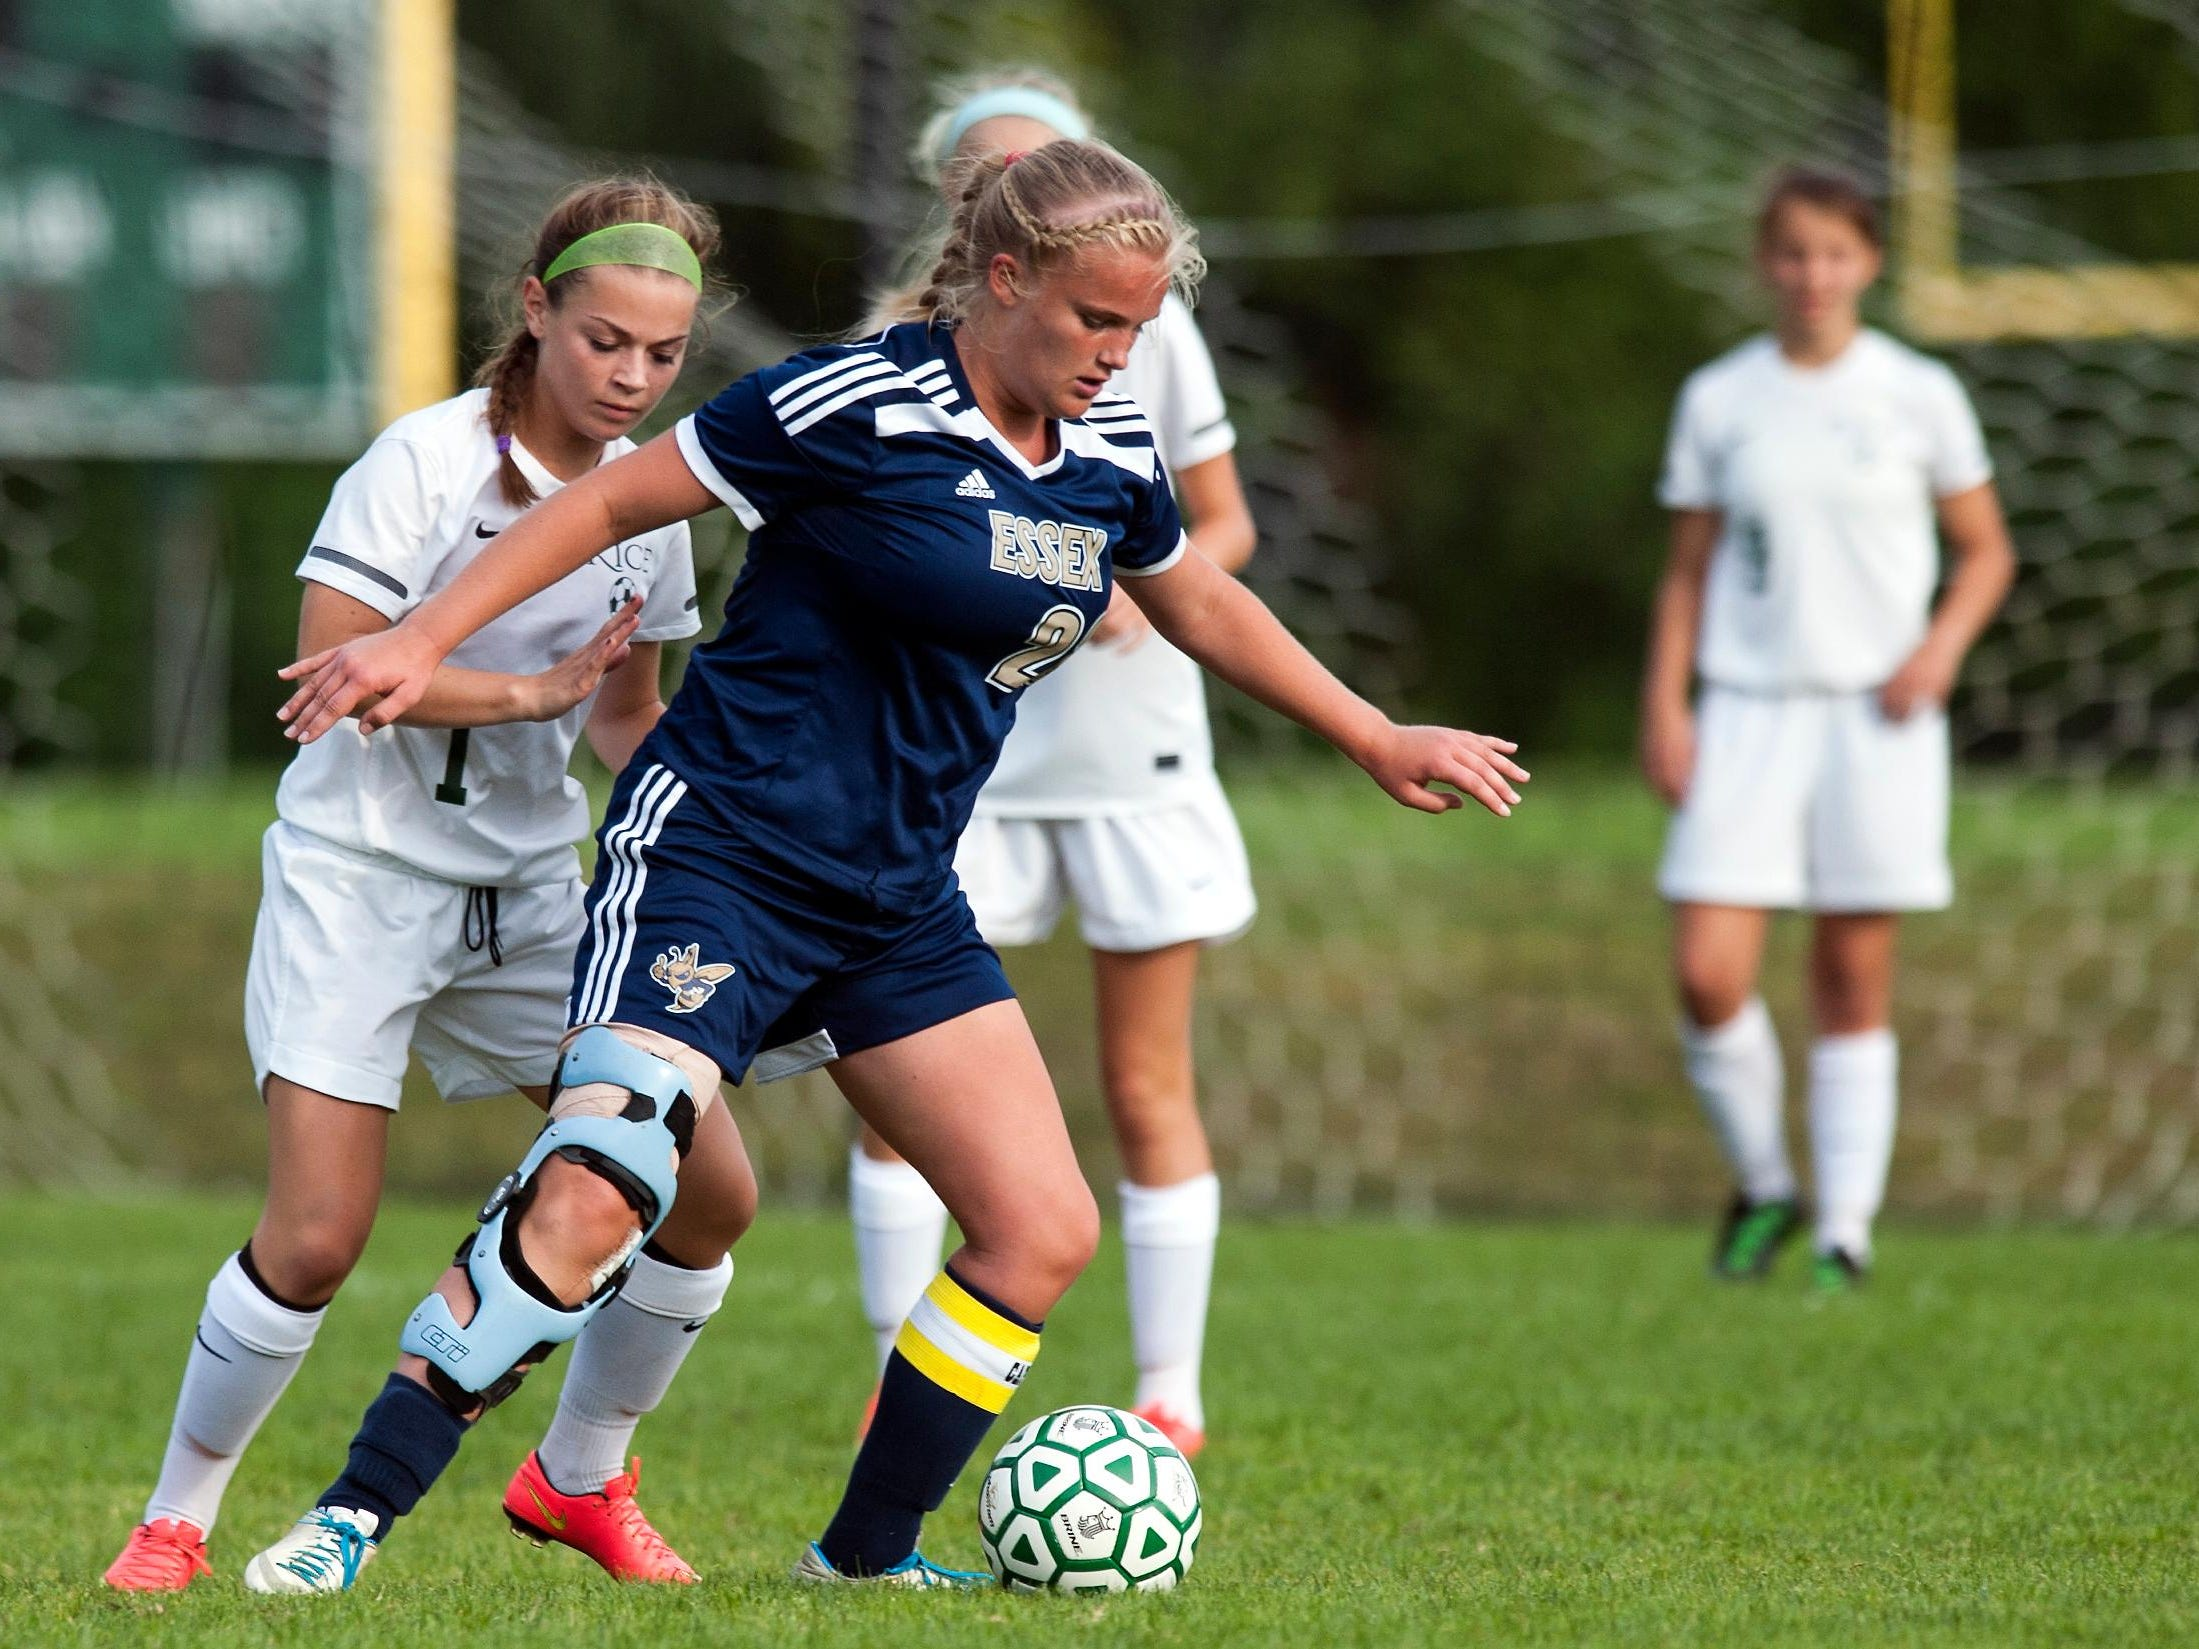 Essex's Megan Macfarlane (20) controls the ball during the girls soccer game between the Essex Hornets and the Rice Green Knights at Rice High School on Wednesday afternoon in 2014.